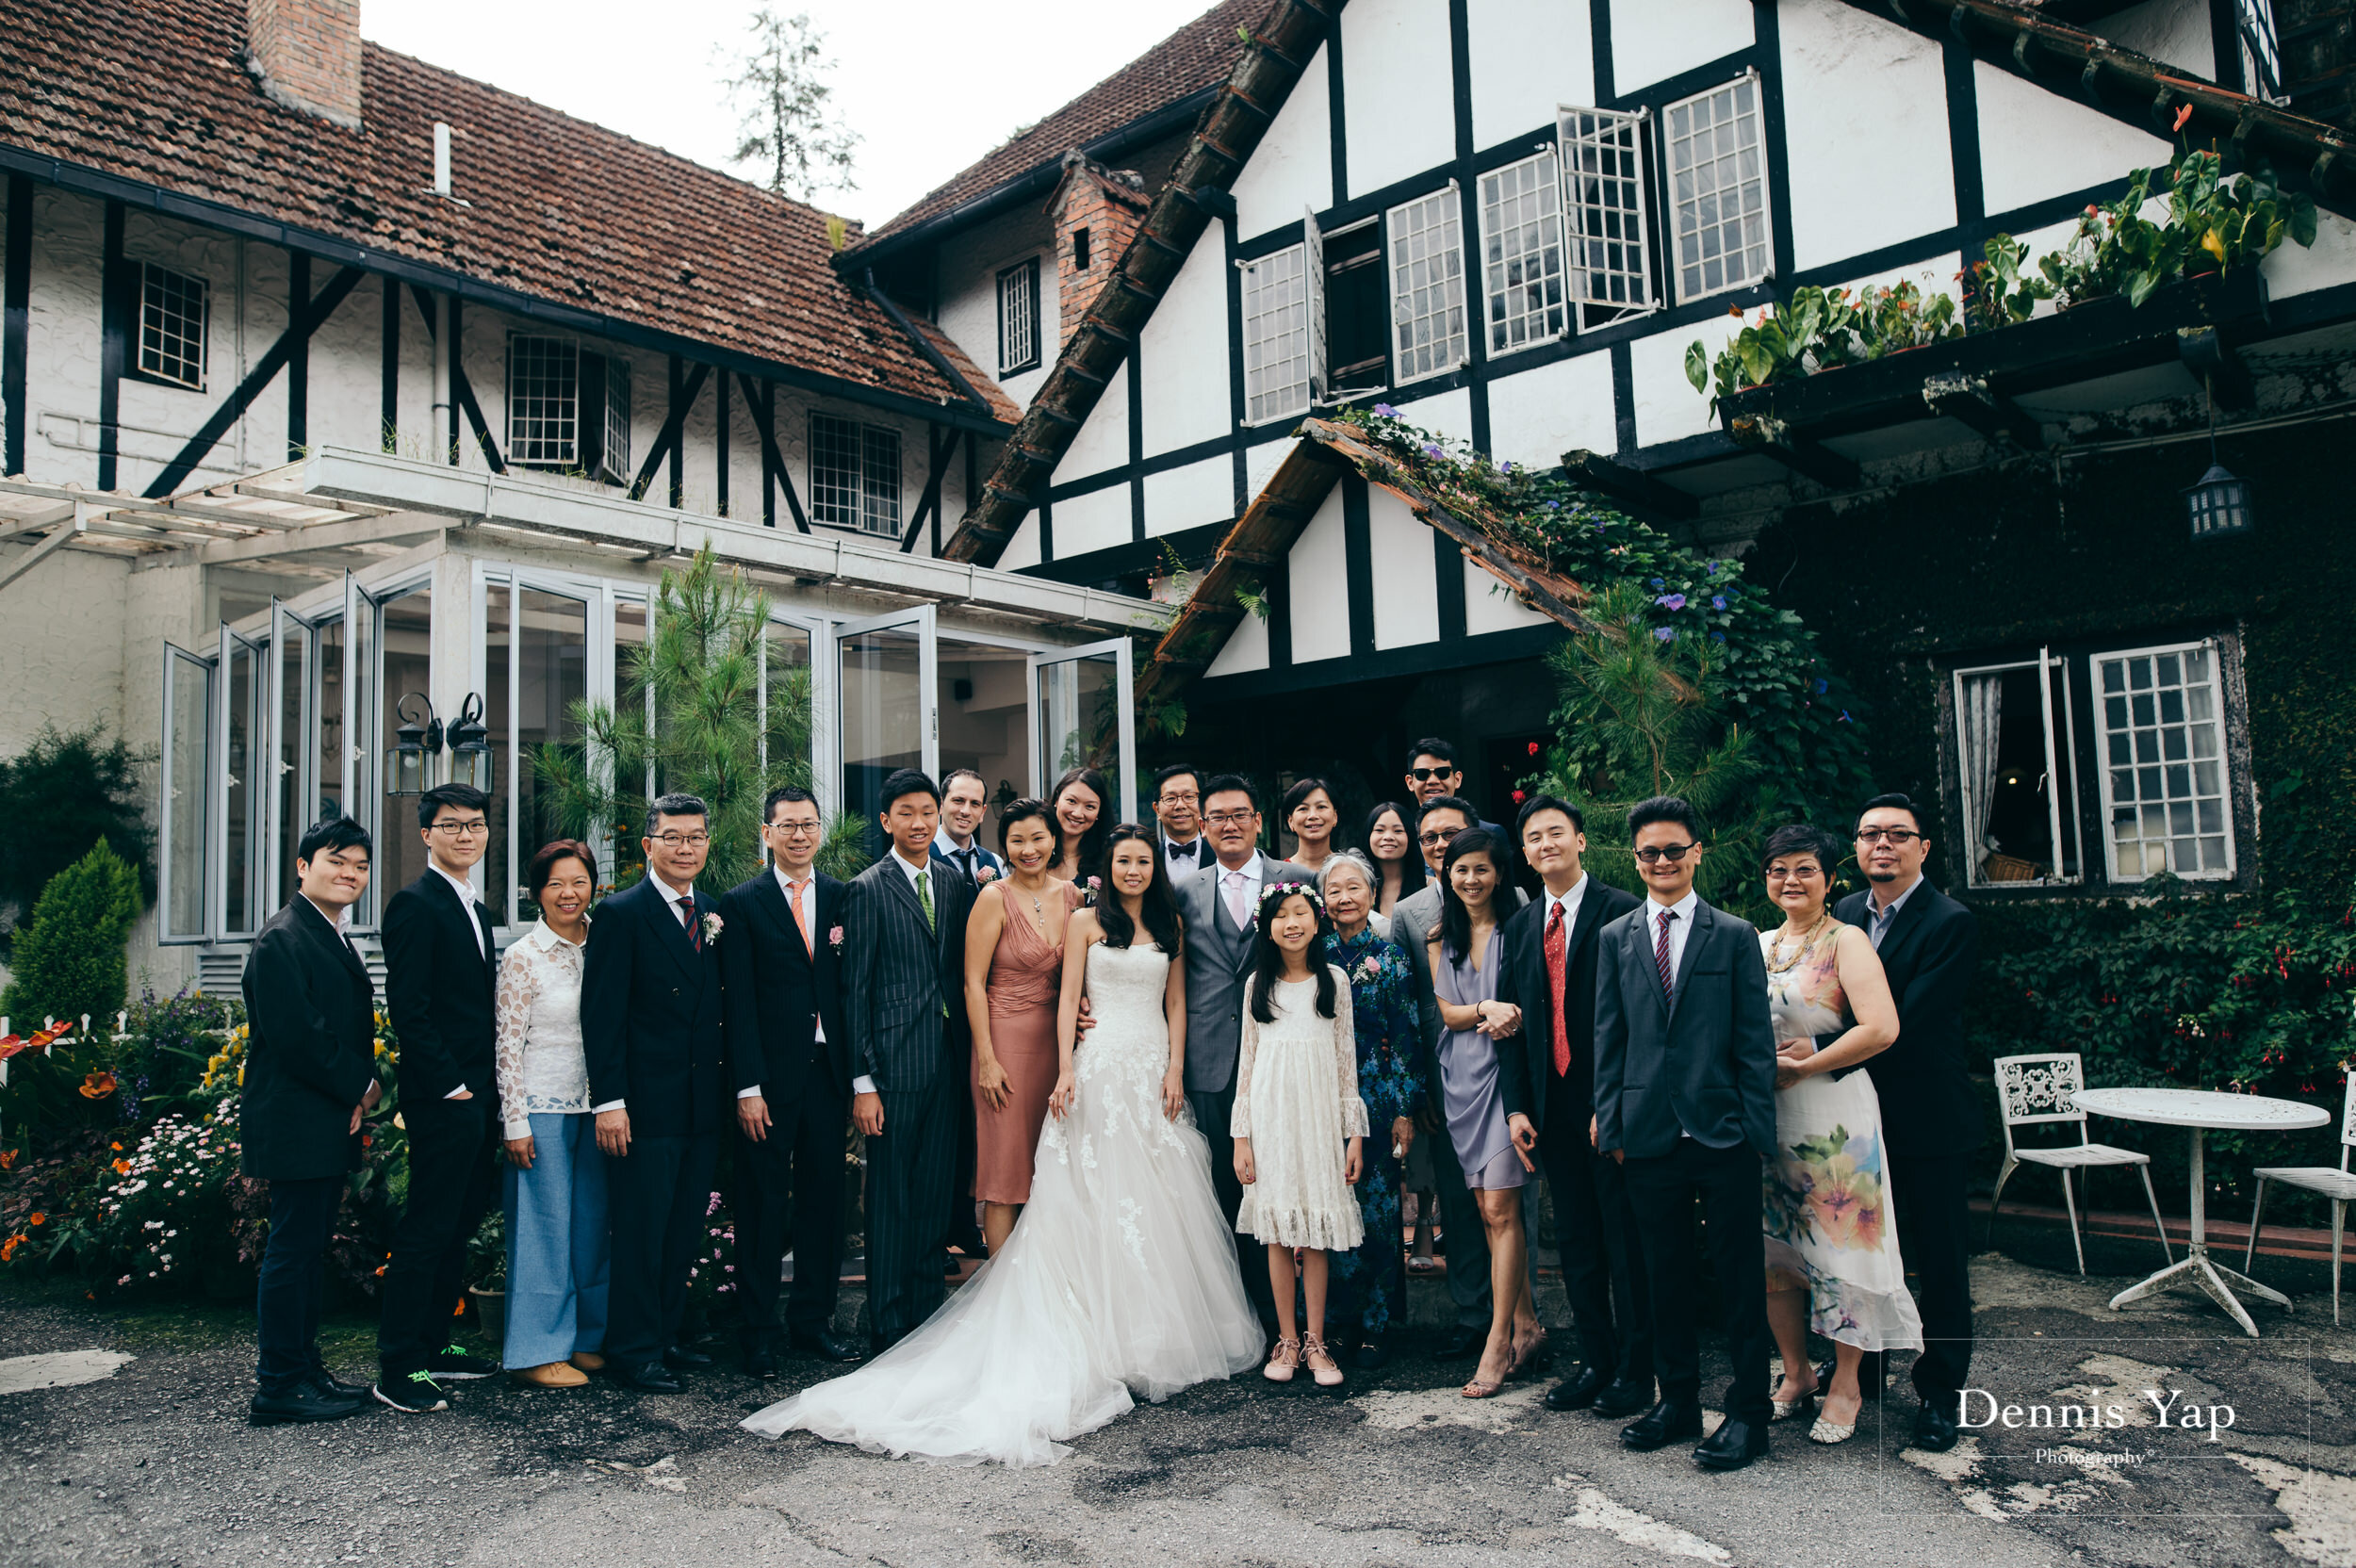 alex siowli wedding reception cameron highlands smoke house dennis yap photography malaysia traditional church wedding-130.jpg